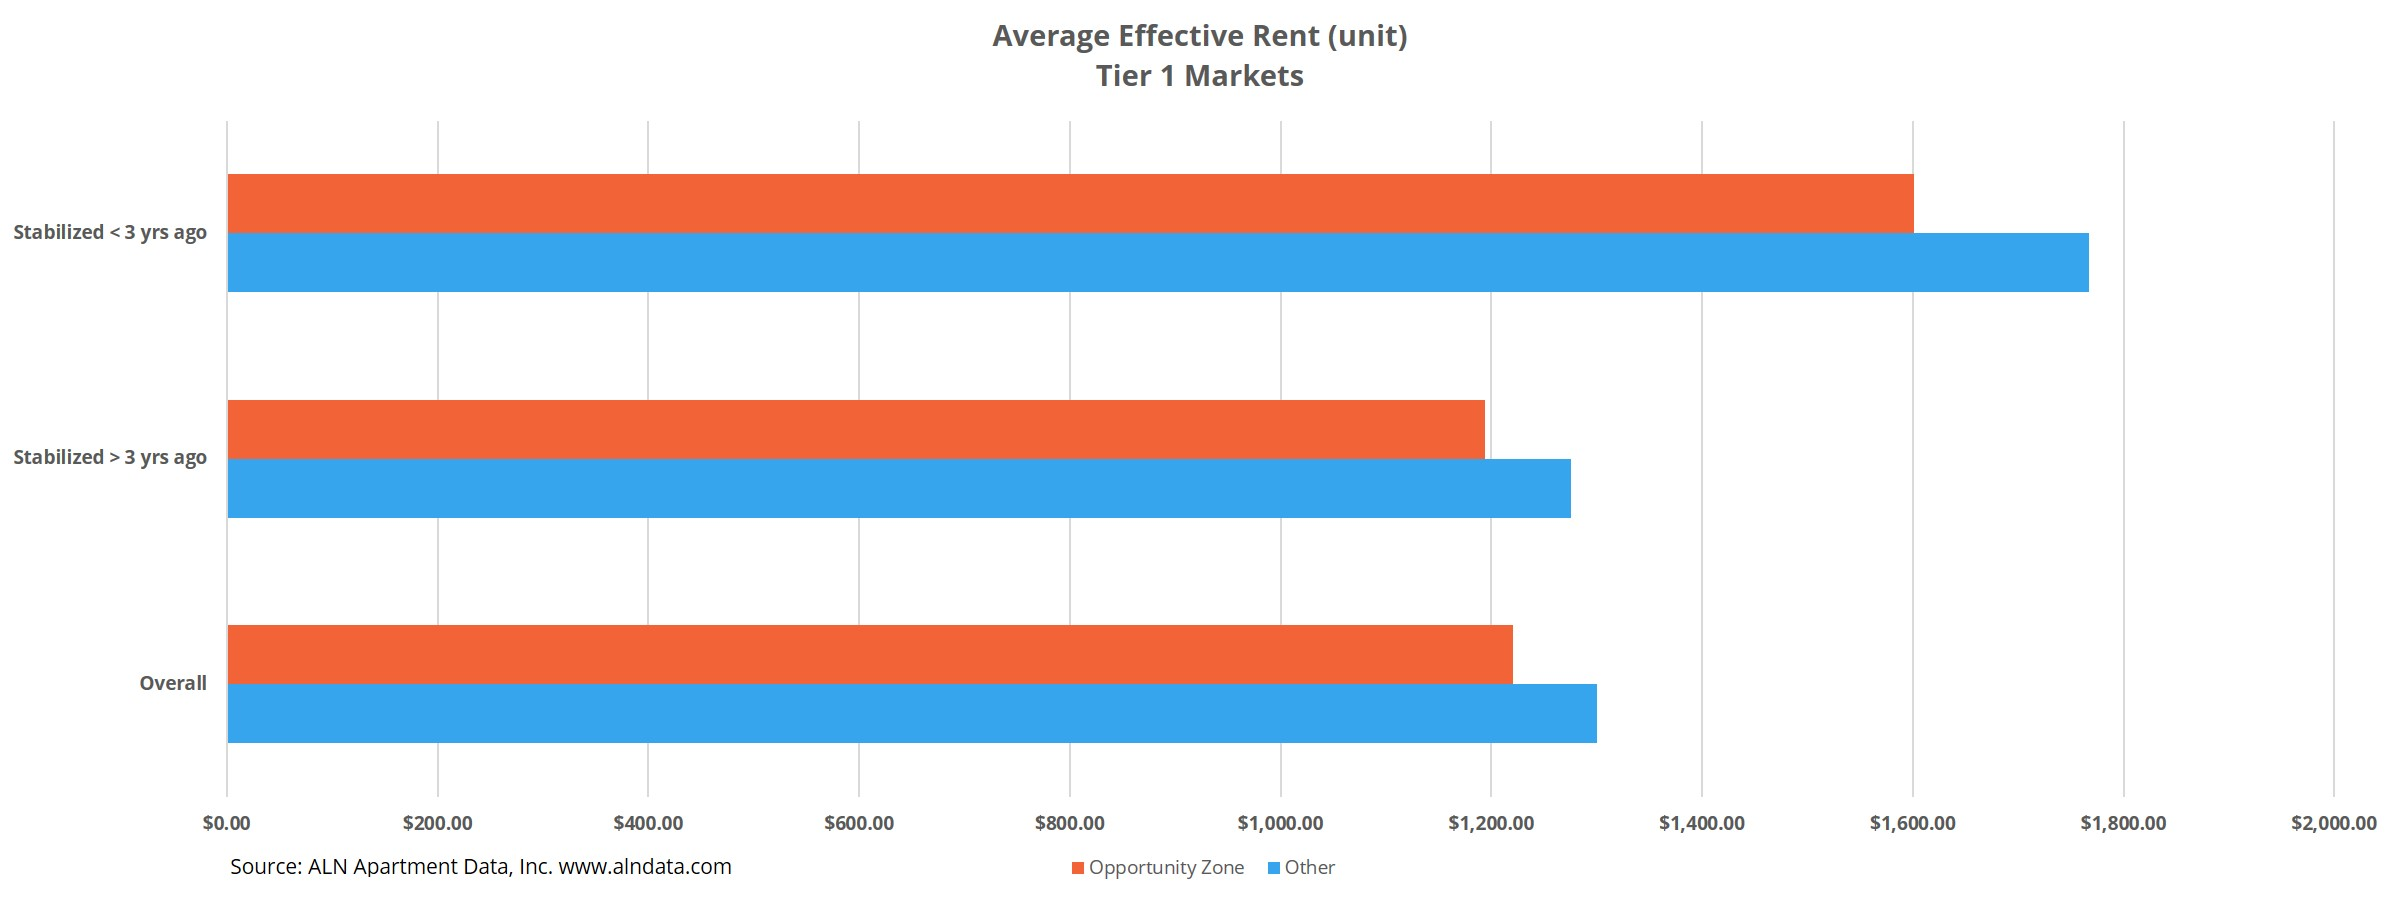 Chart Showing Average Effective Rent in Tier 1 Markets